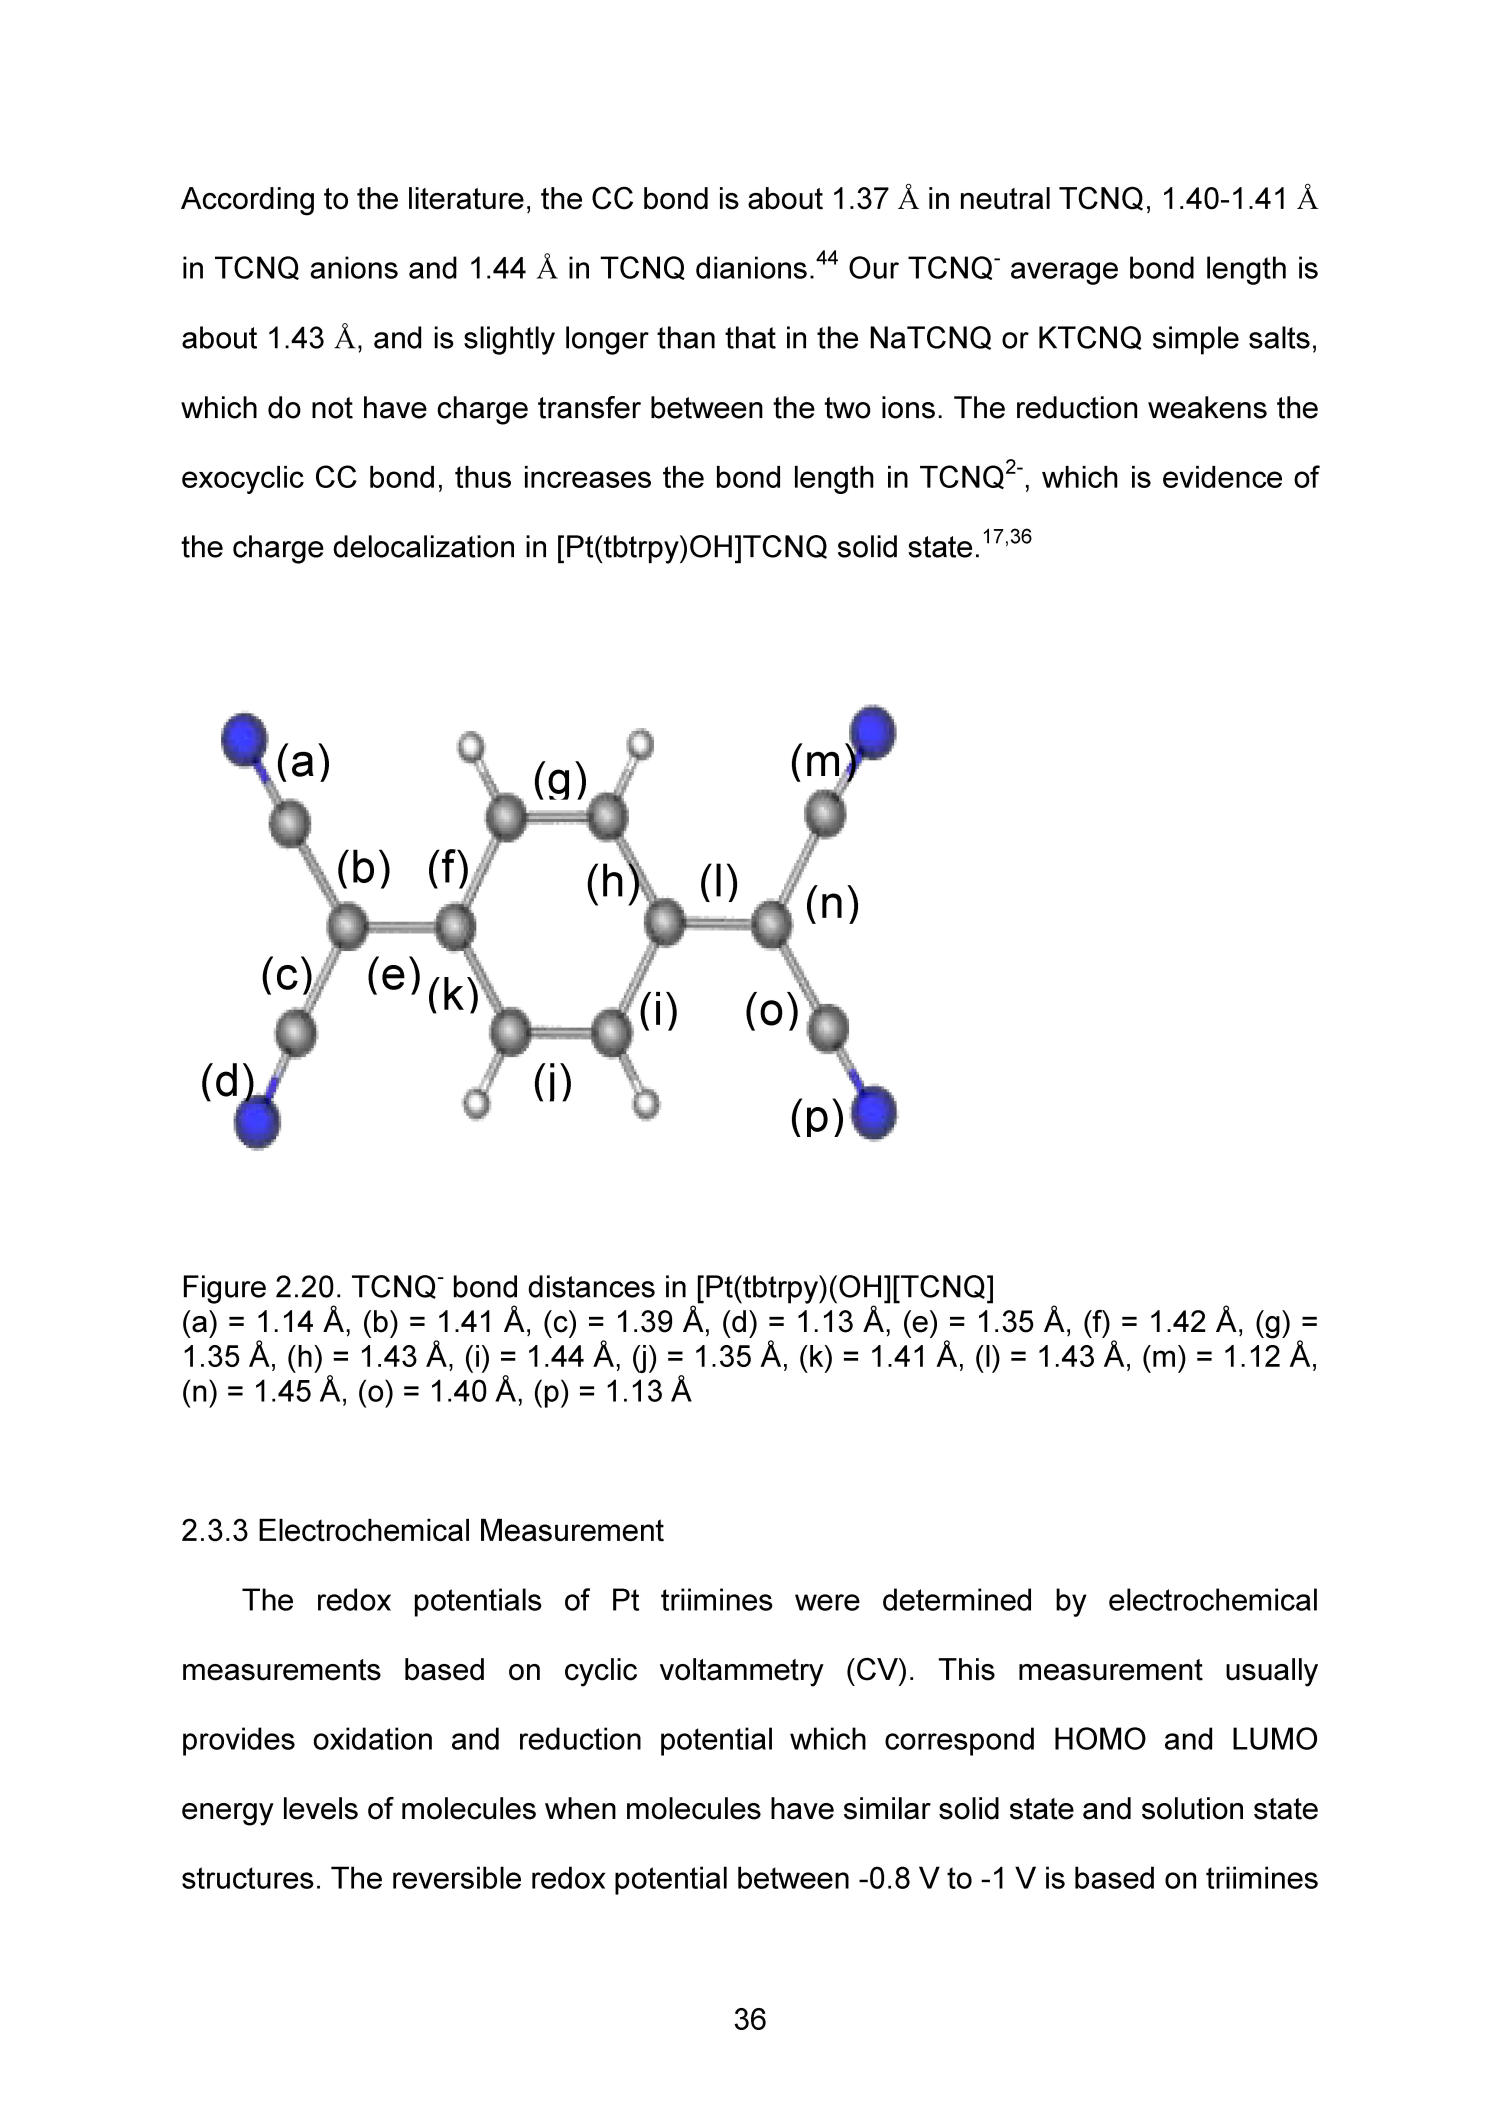 Triimine Complexes of Divalent Group 10 Metals for Use in Molecular